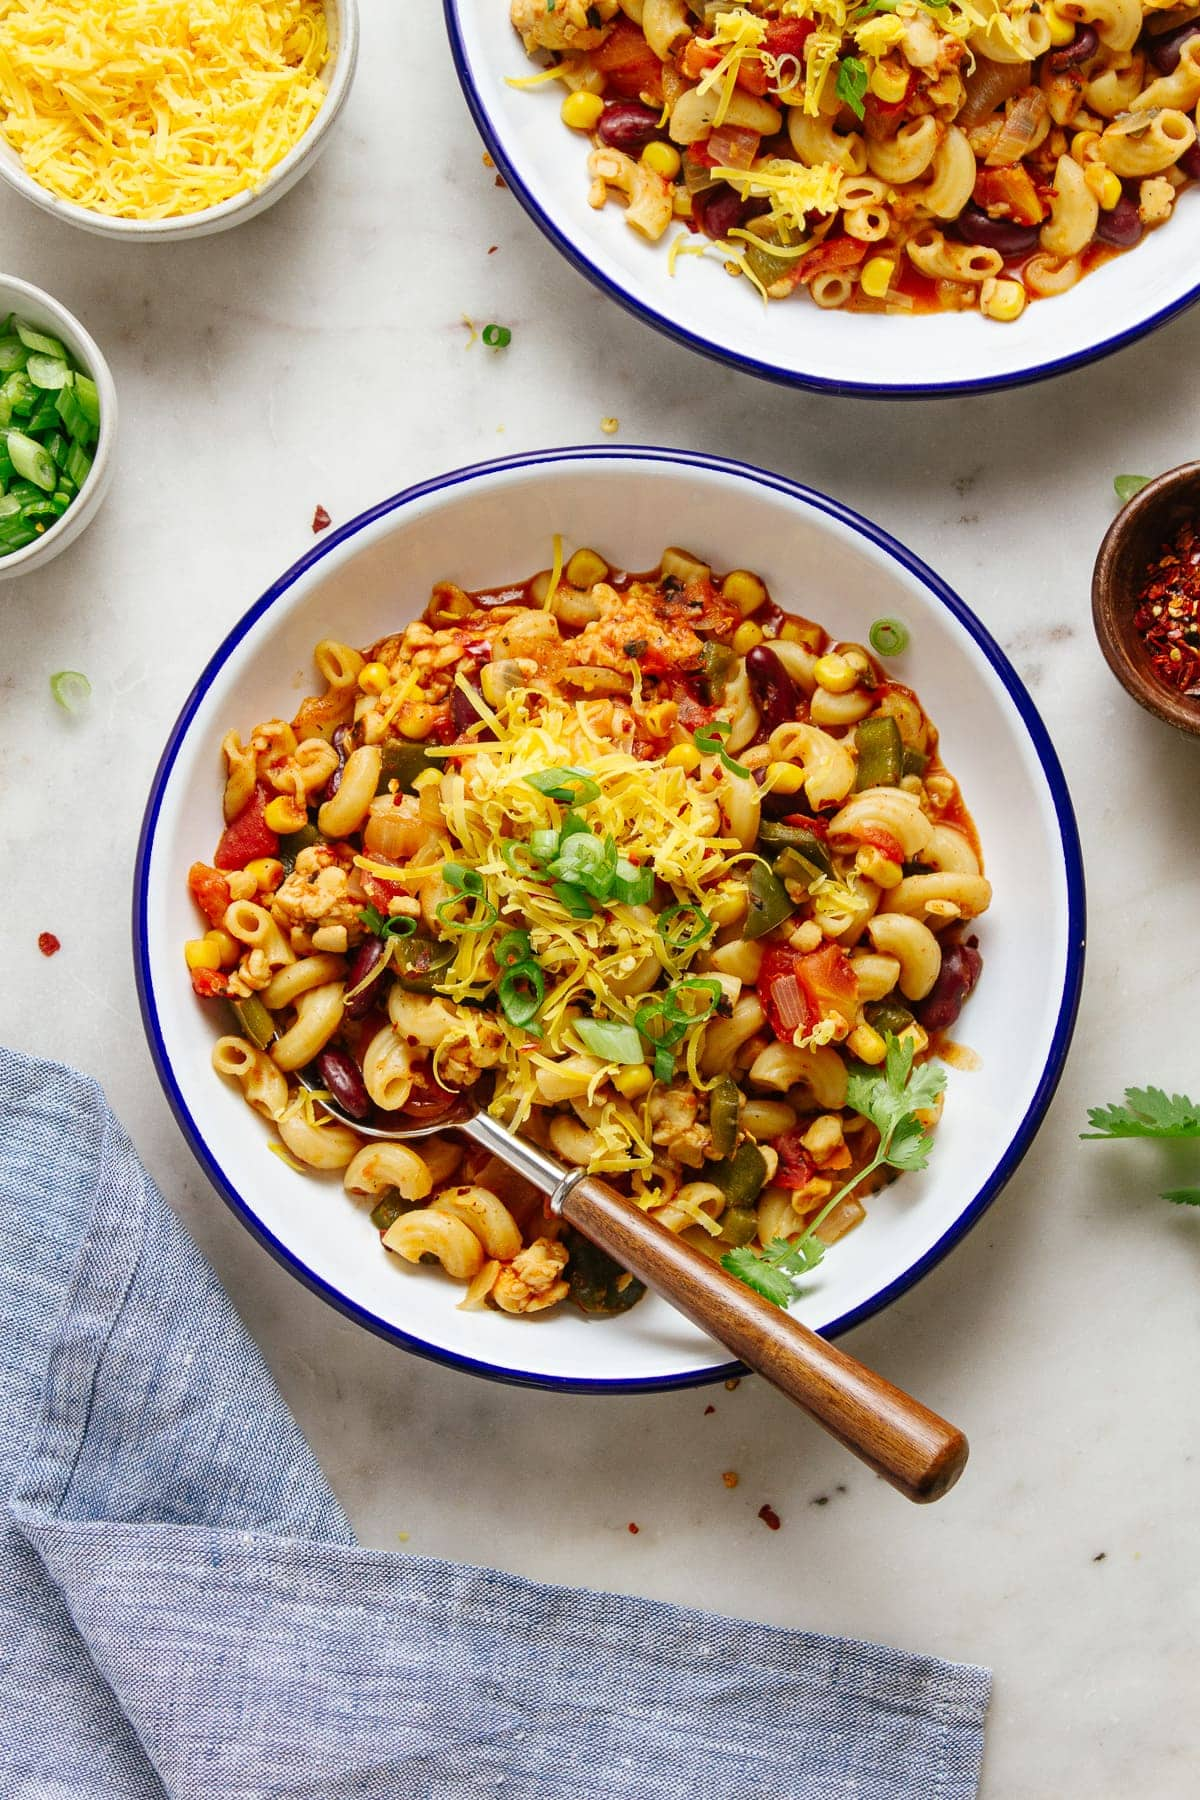 top down view of a serving of vegan chili mac in a white bowl with blue rim.